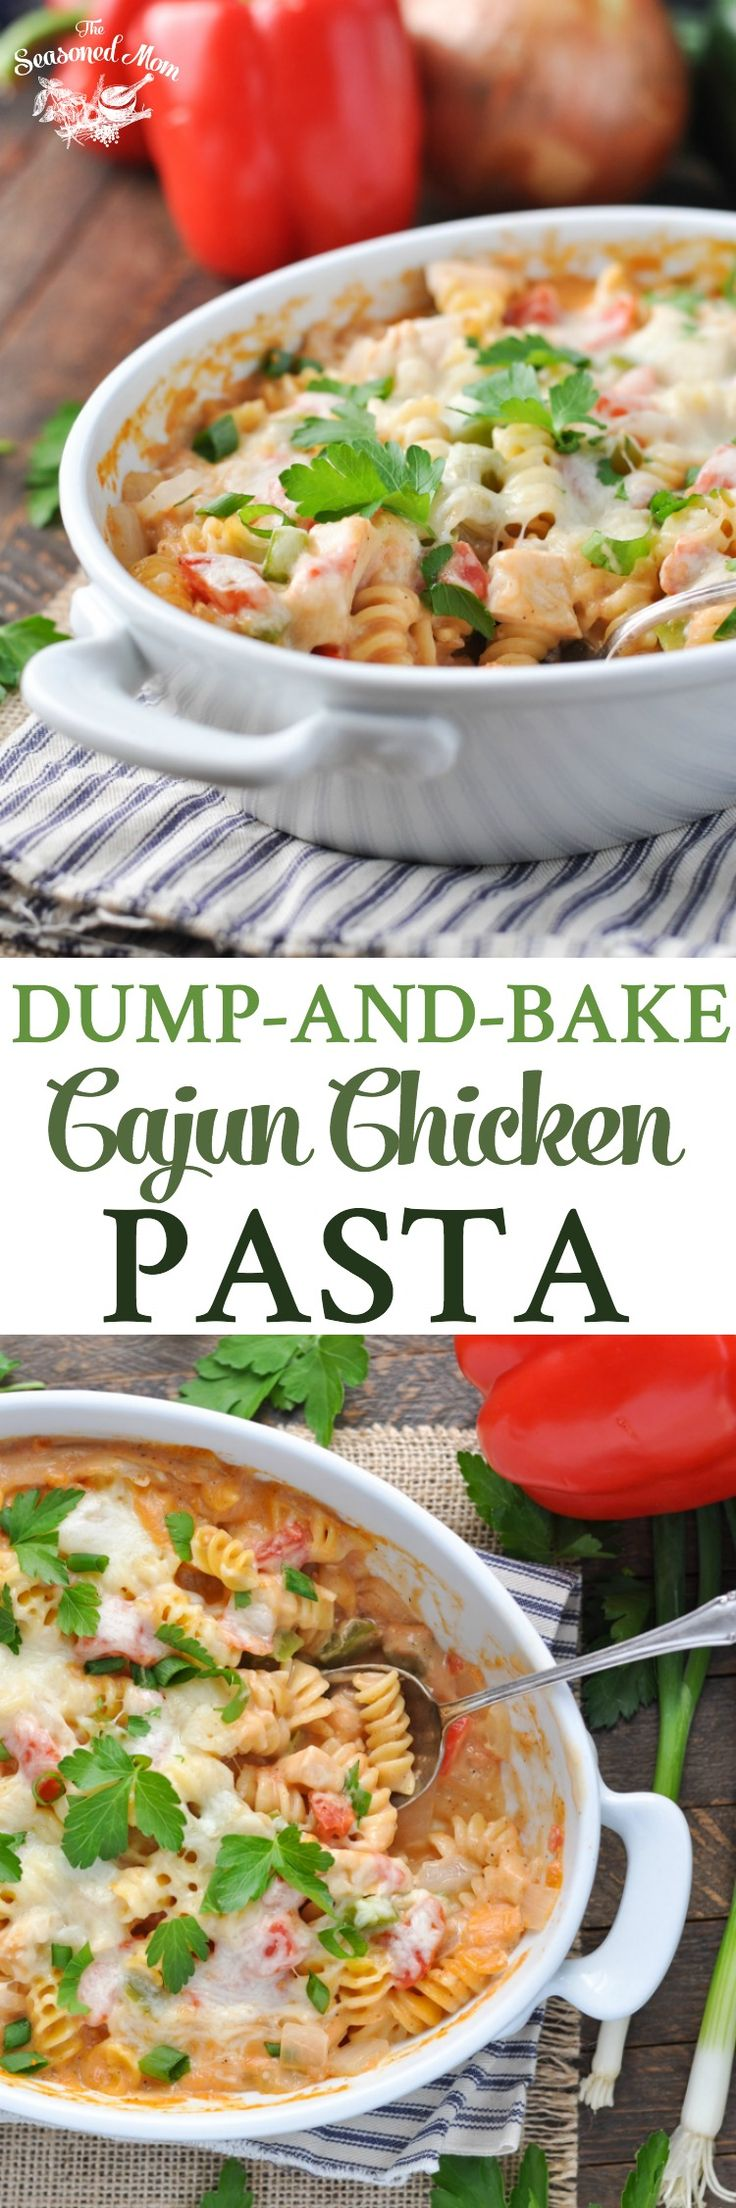 Dump-and-Bake Cajun Chicken Pasta! Easy Dinner Recipes | Dinner Ideas | Chicken Recipes | Pasta Recipes | Casserole Recipes | Casserole Dinners